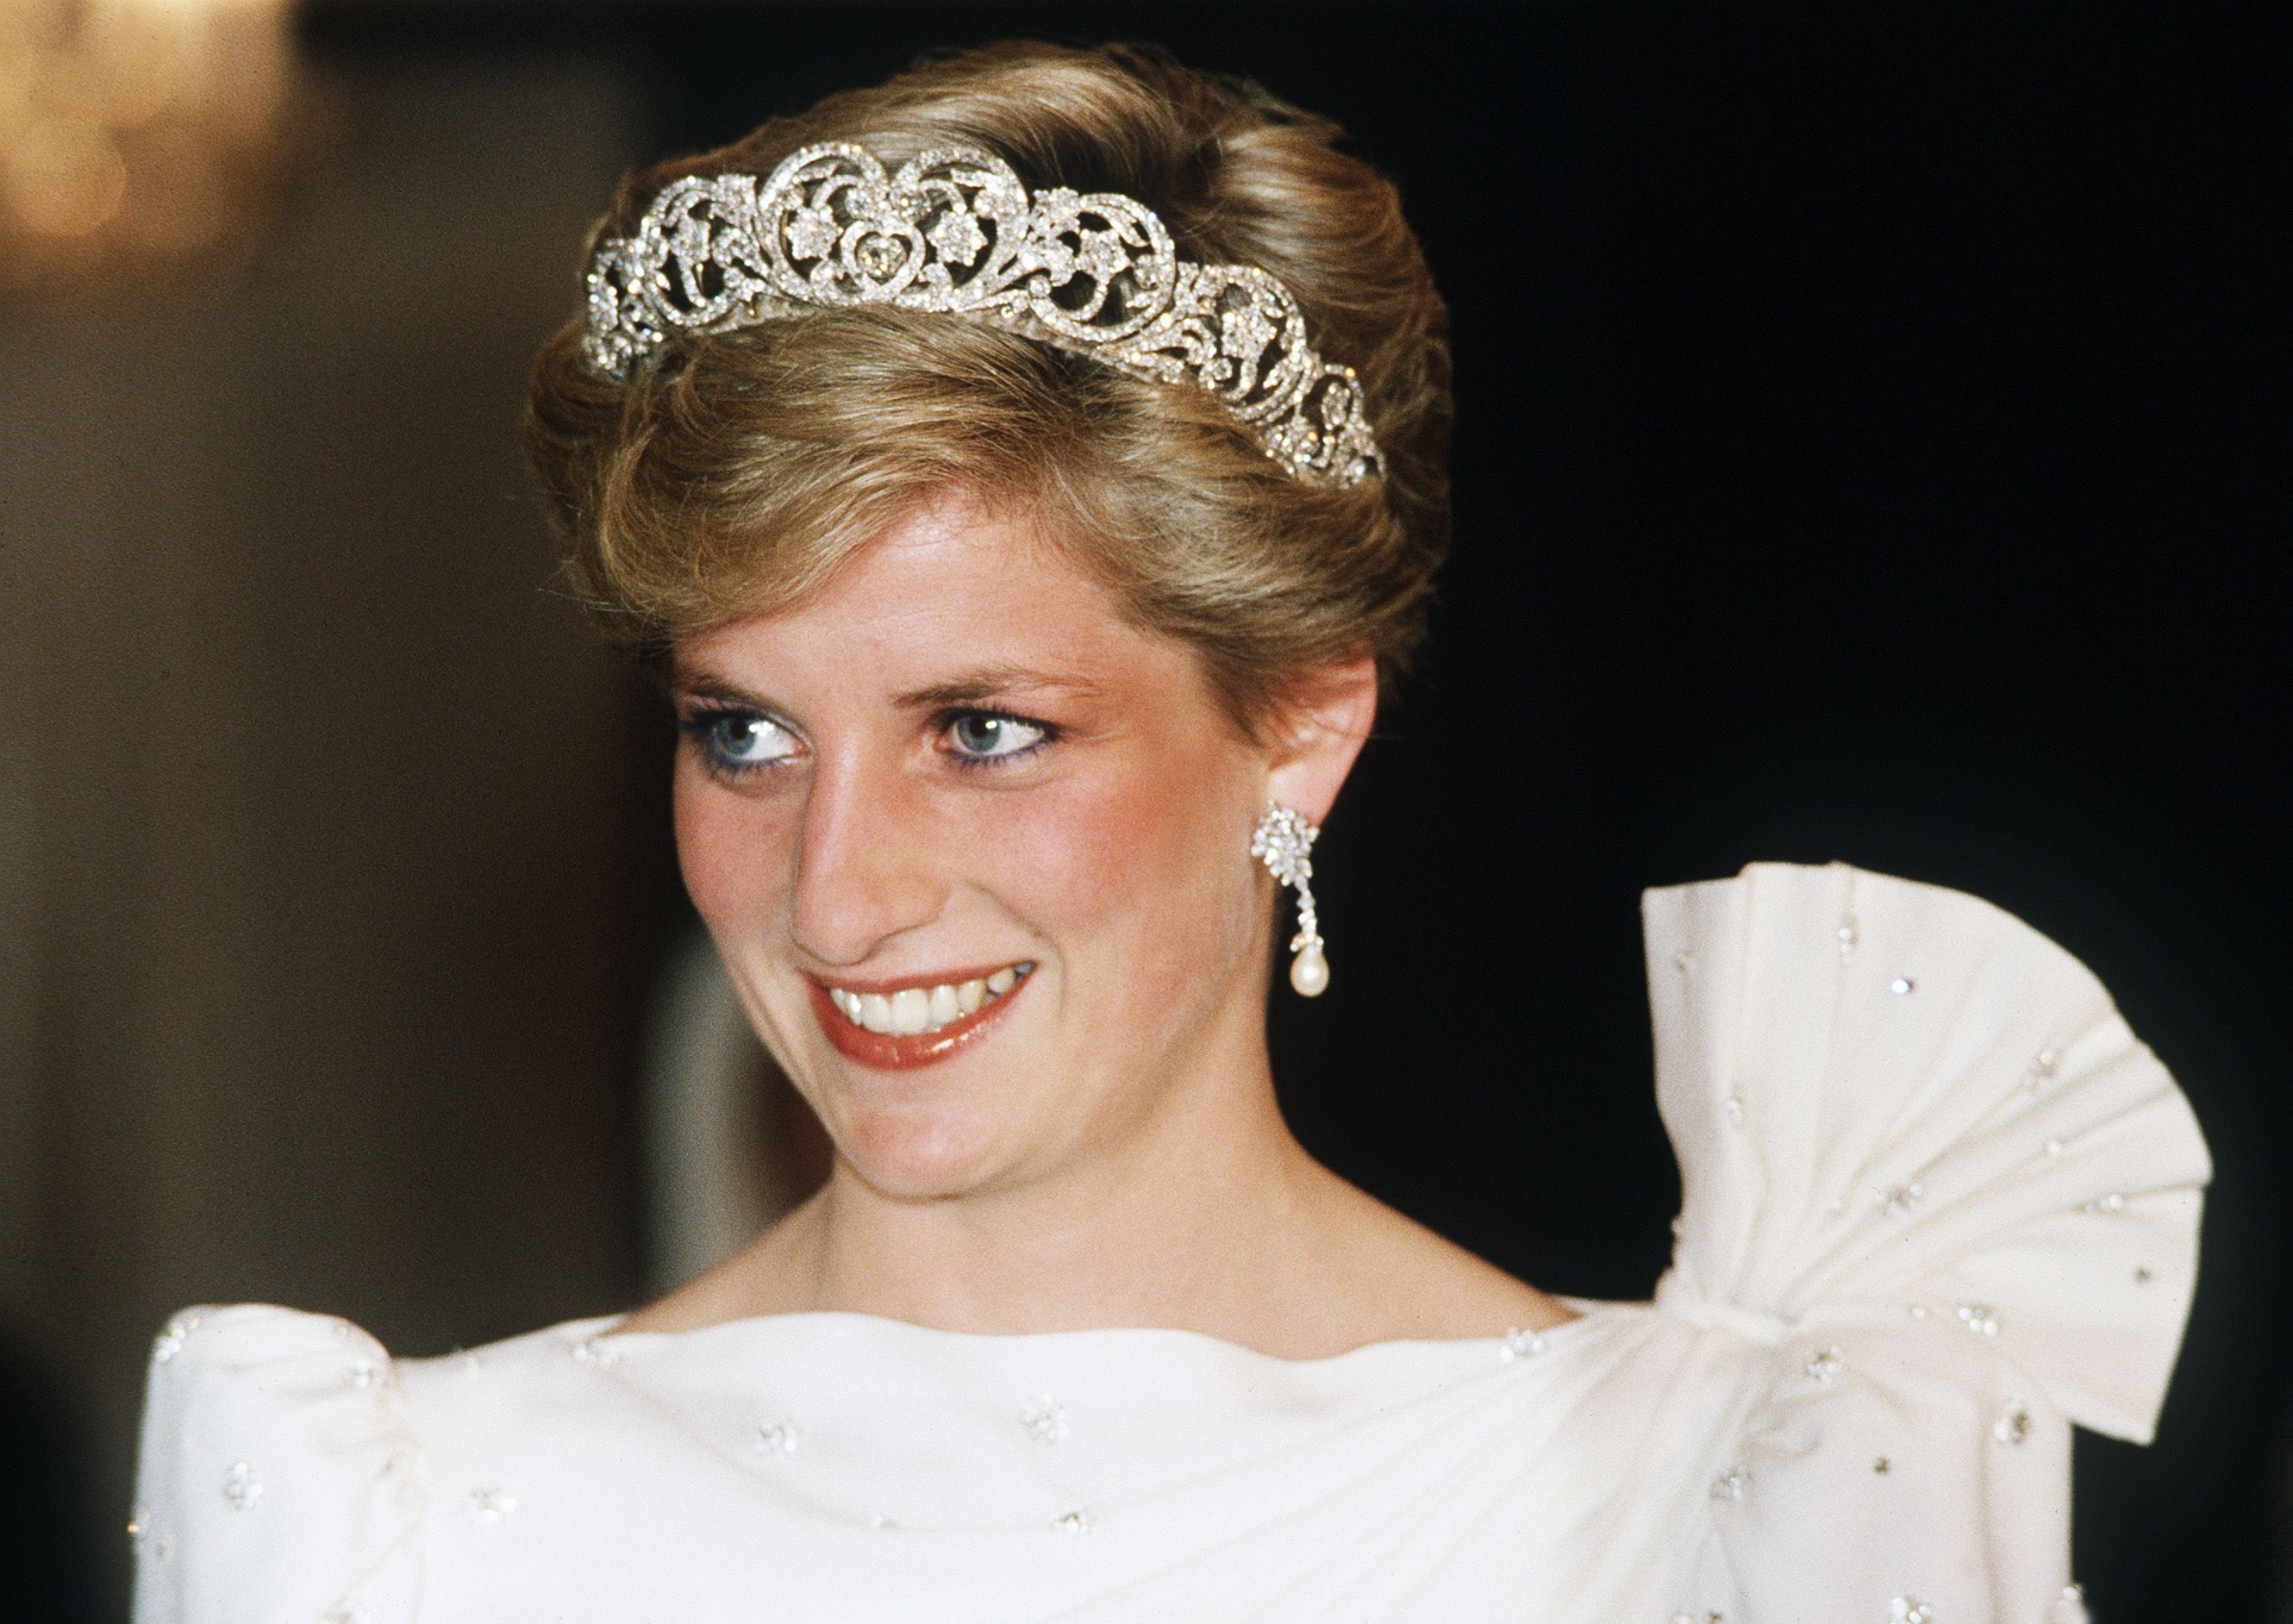 Princess Diana at a State Banquet on November 16, 1986. | Photo: Getty Images